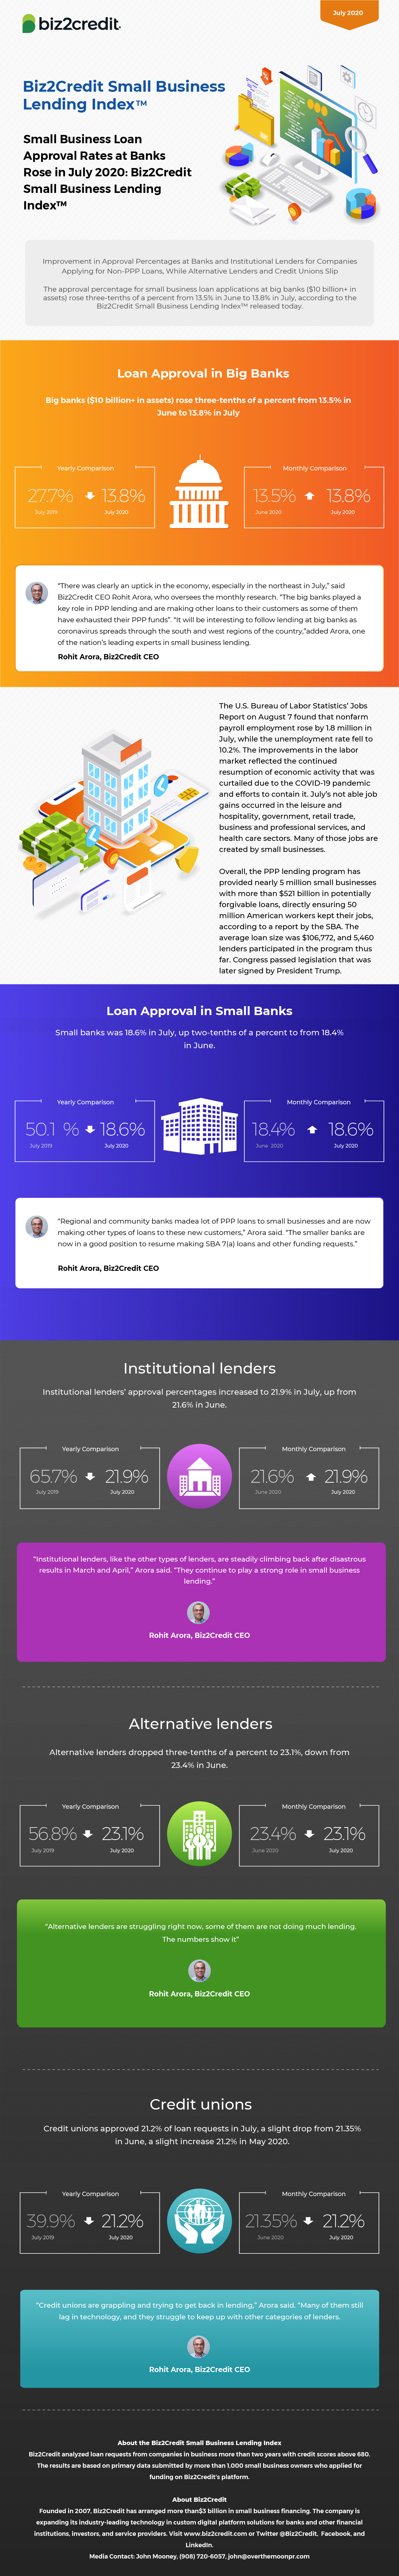 July 2020 Lending Index Infographic